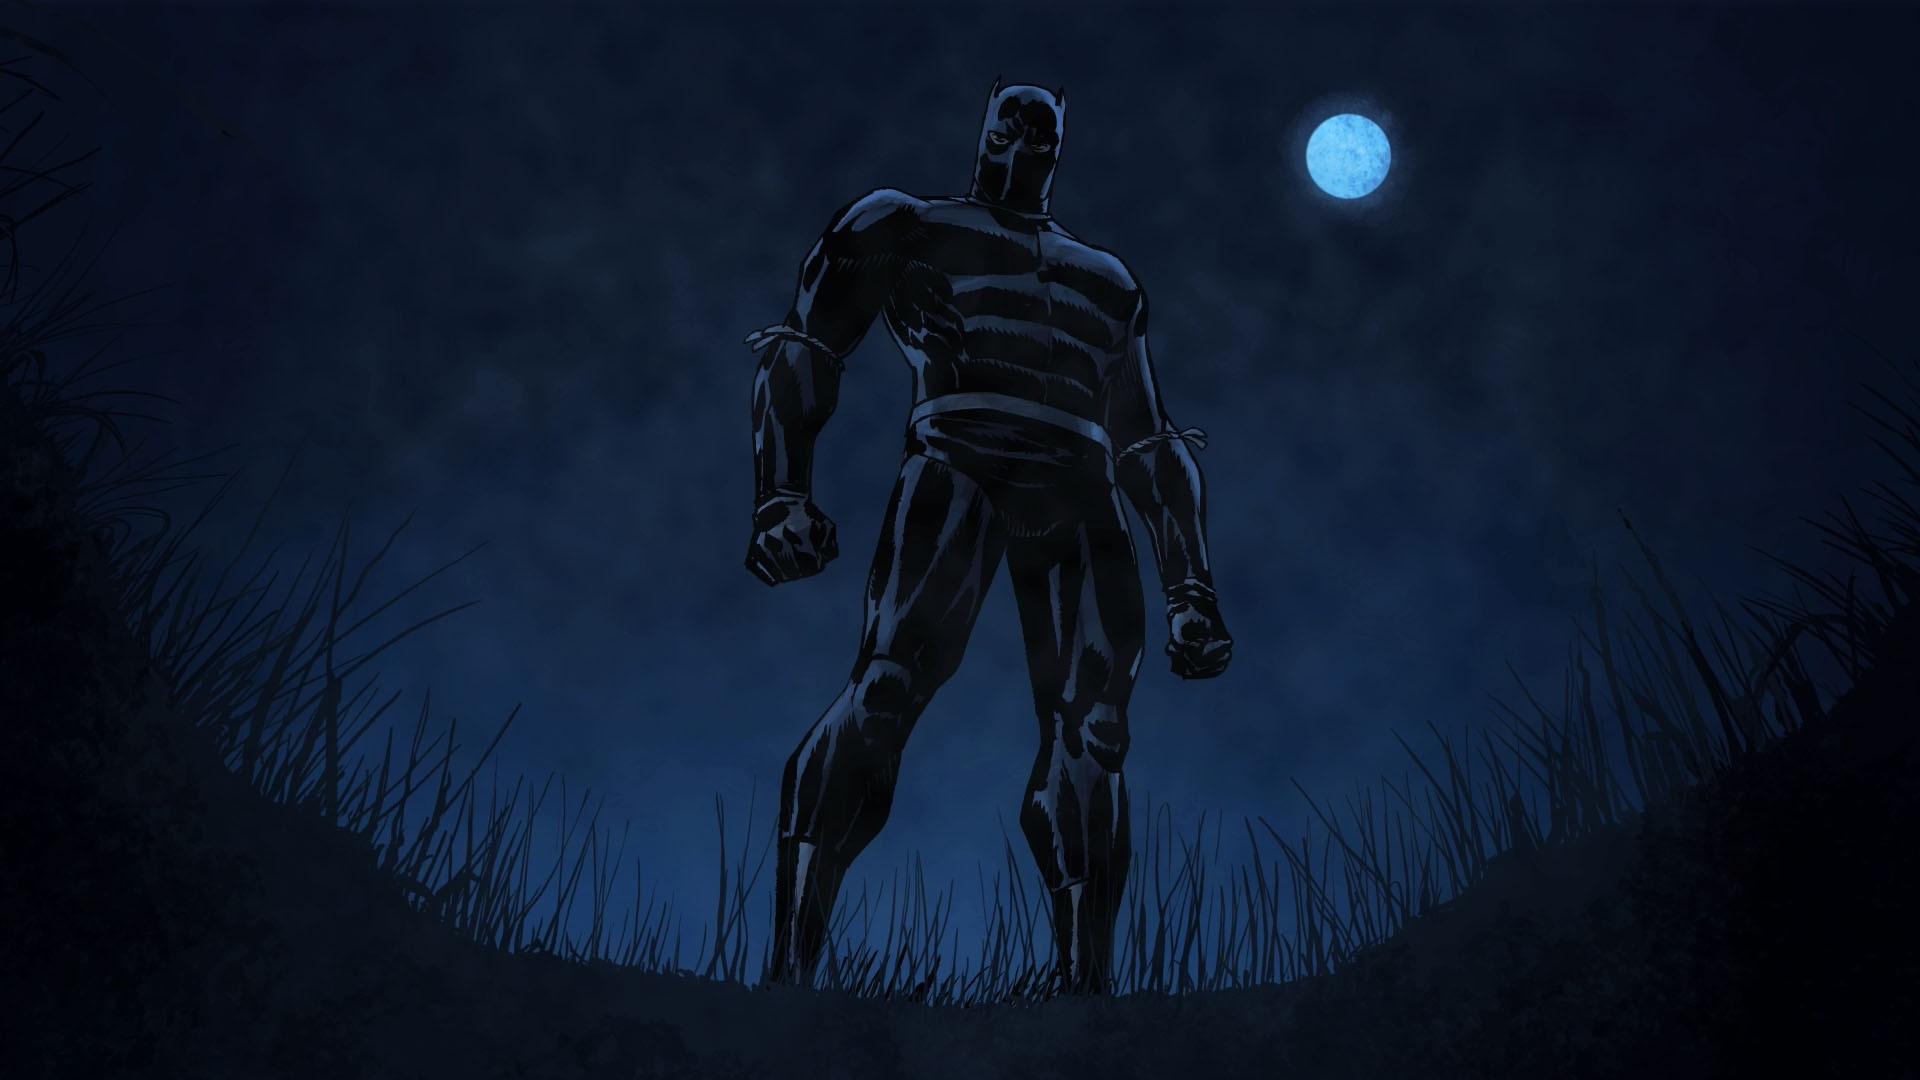 Awesome Android Wallpapers #android #androidwallpaper · Black Panther …